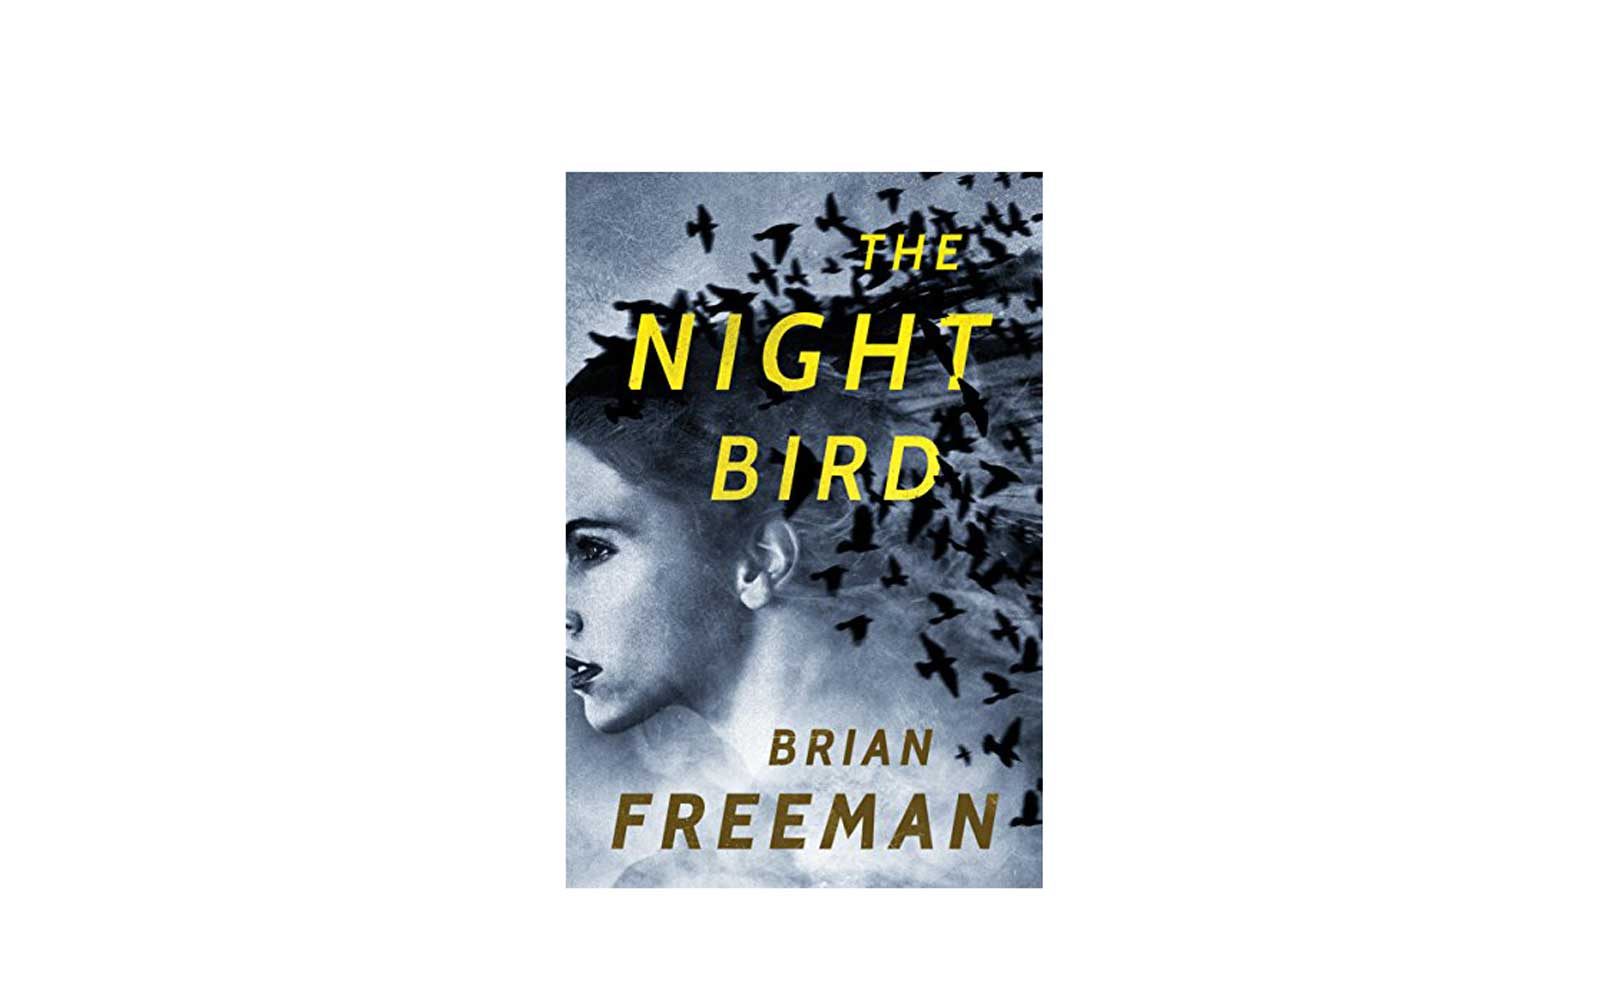 20 most popular Kindle books 2017 The Night Bird